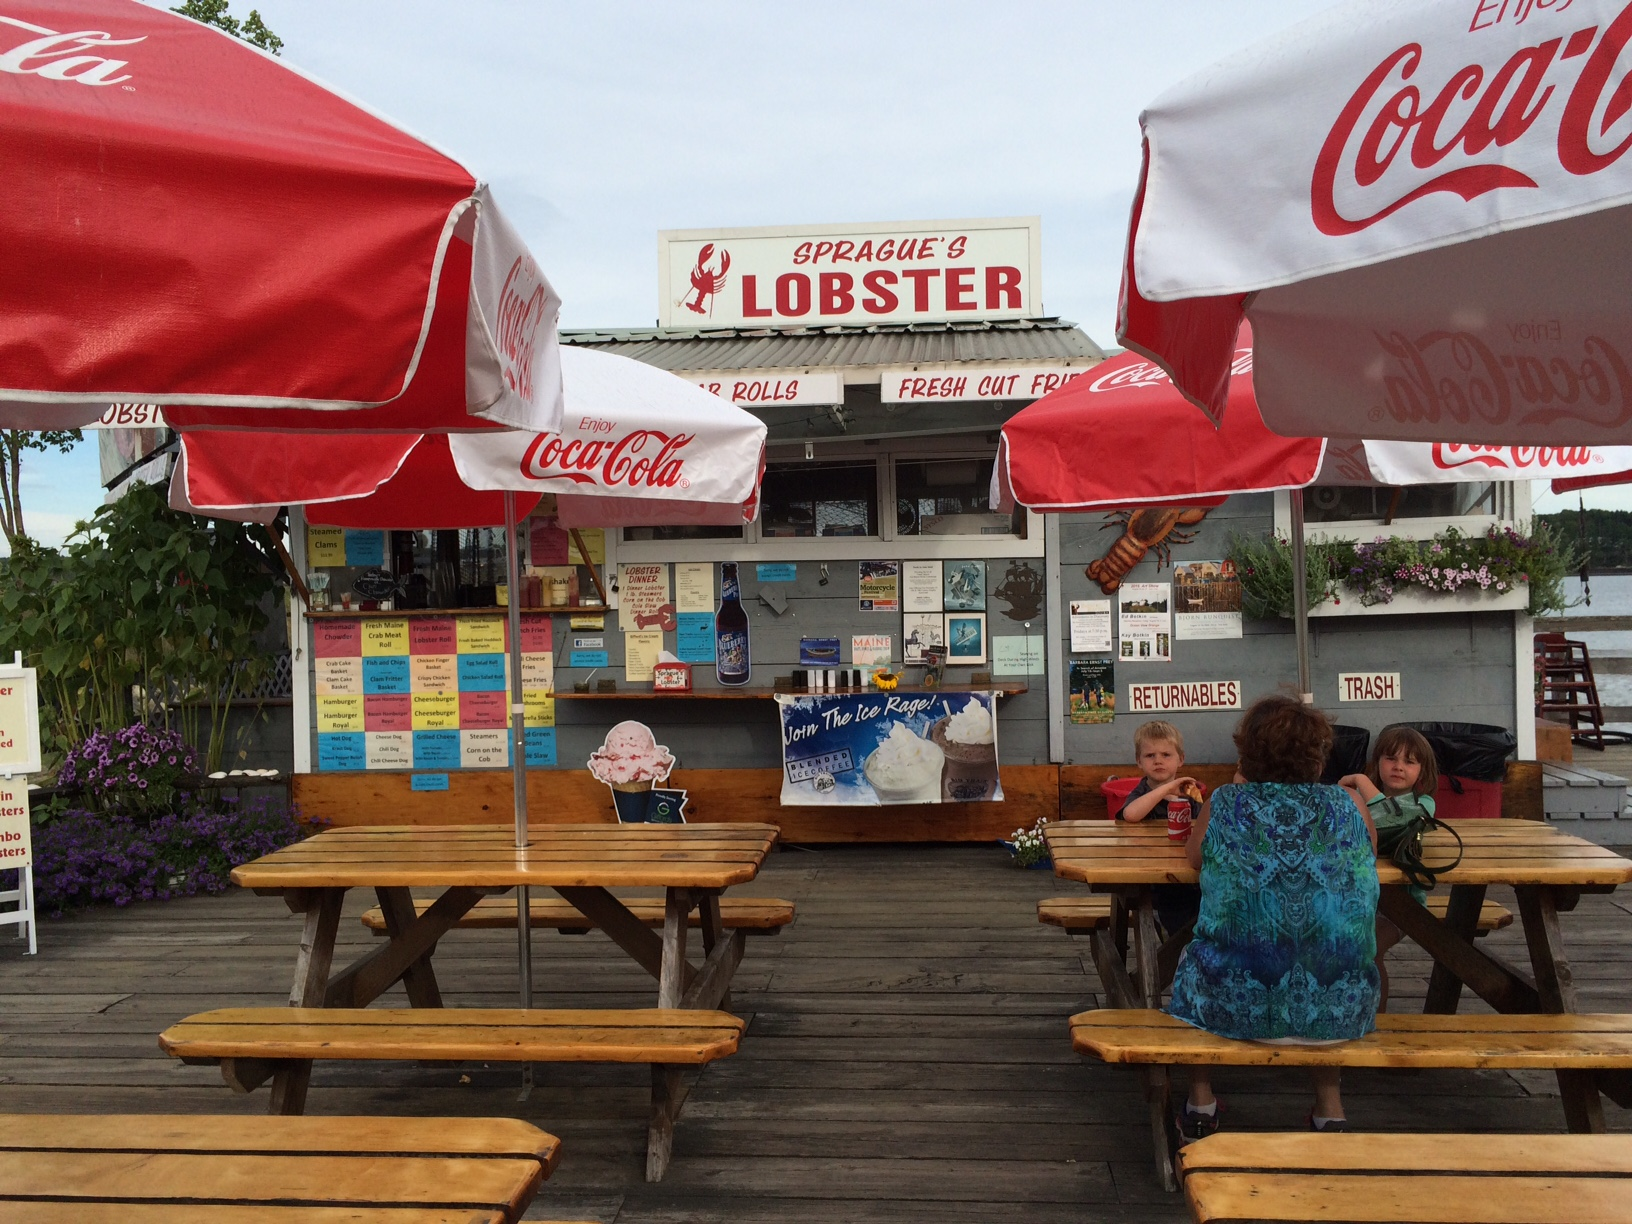 Sprague's Lobster, 22 Main St. (Creamery Pier)